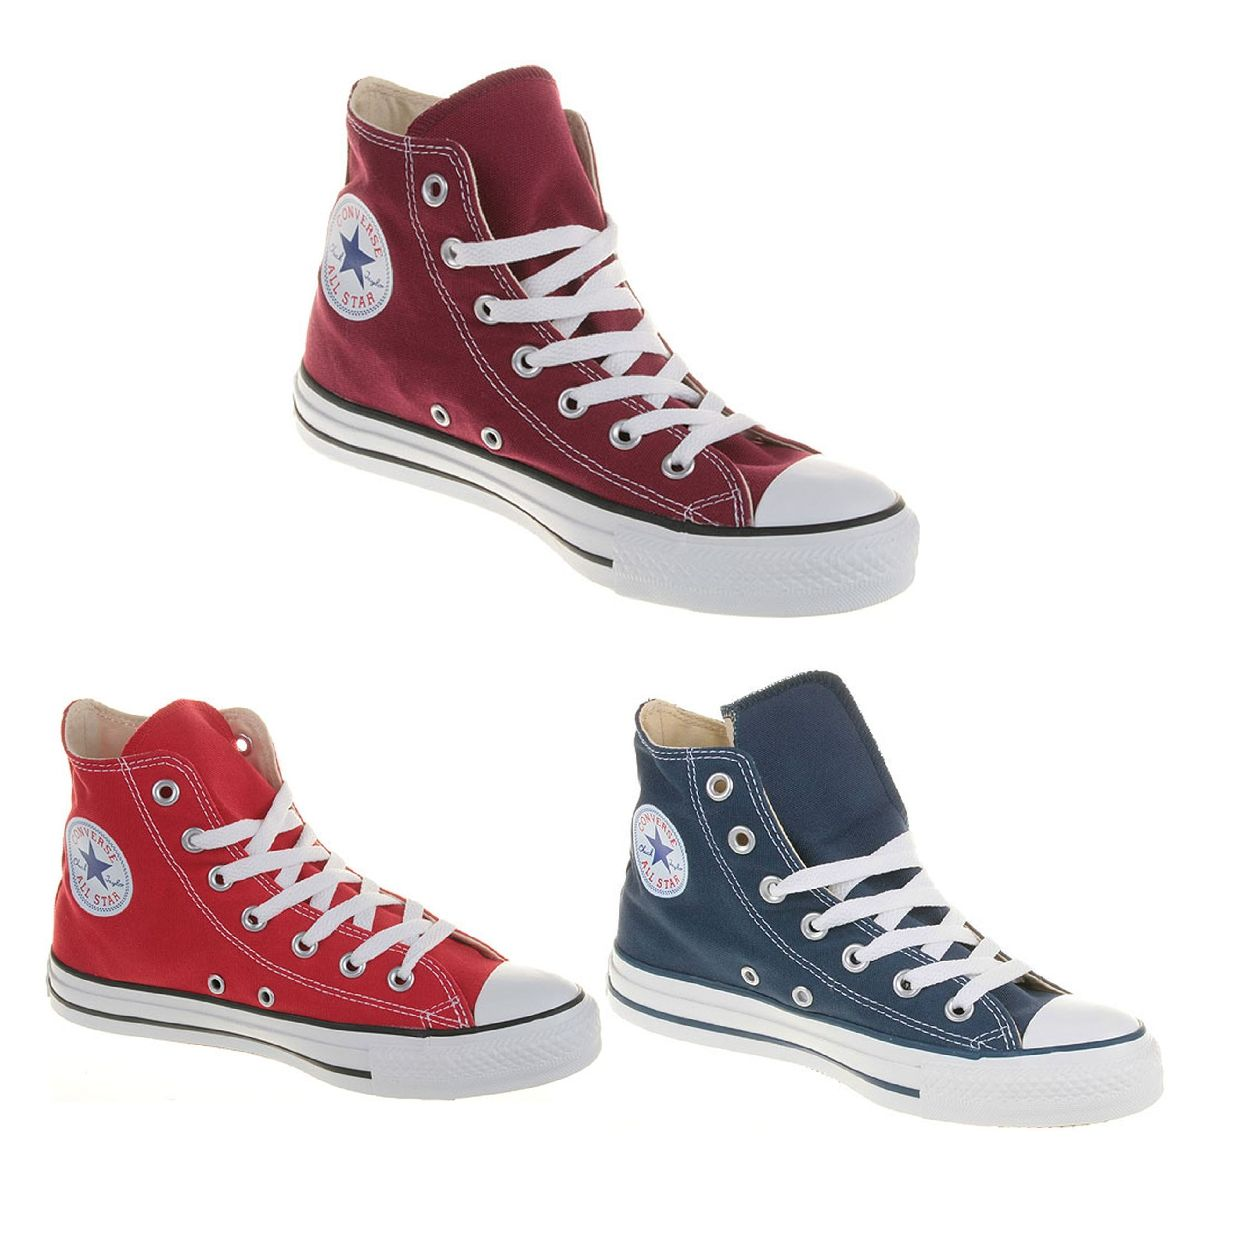 Converse Chuck Taylor All Star HI Sneaker Chukkas Canvas Unisex Schuhe CO